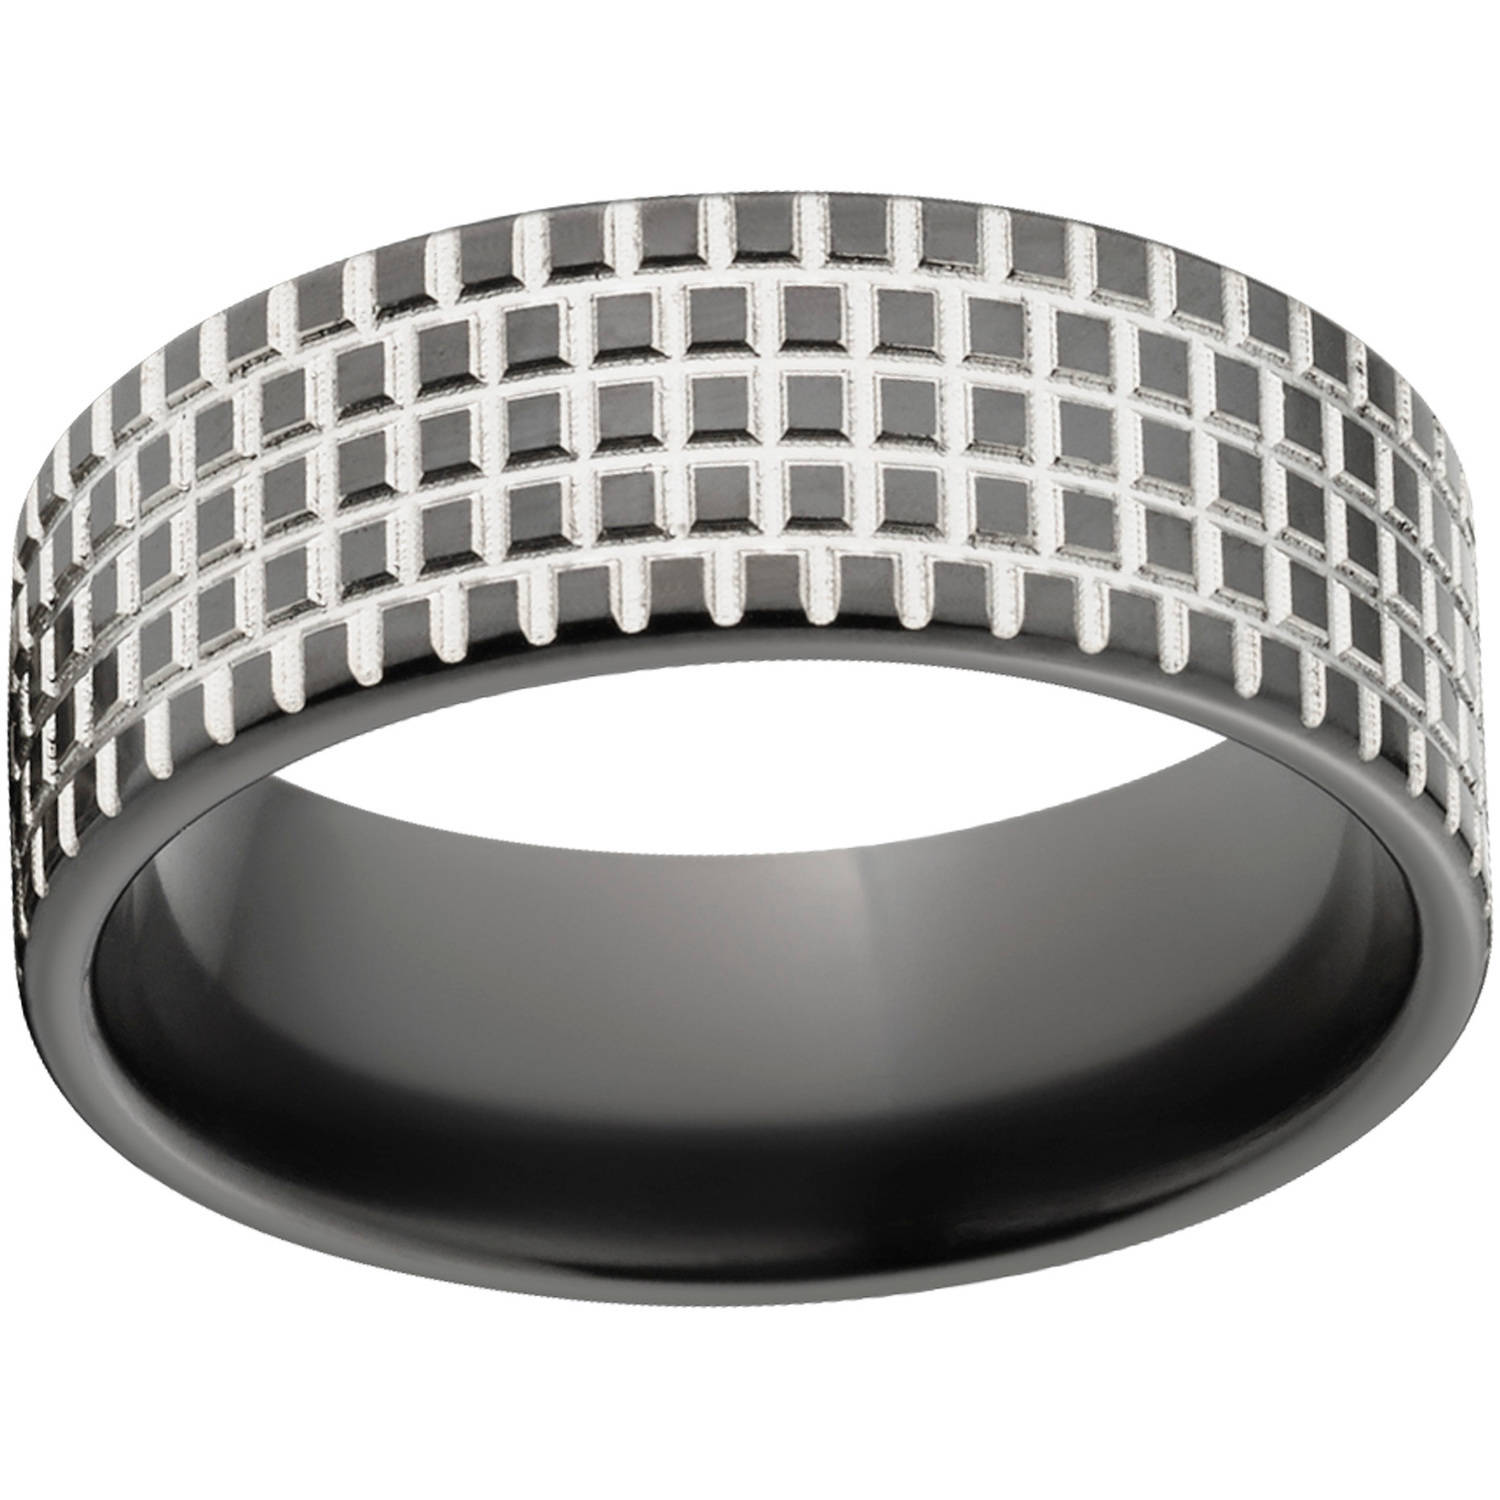 Custom Men's Tire Tread 8mm Black Zirconium Wedding Band with Comfort Fit Design